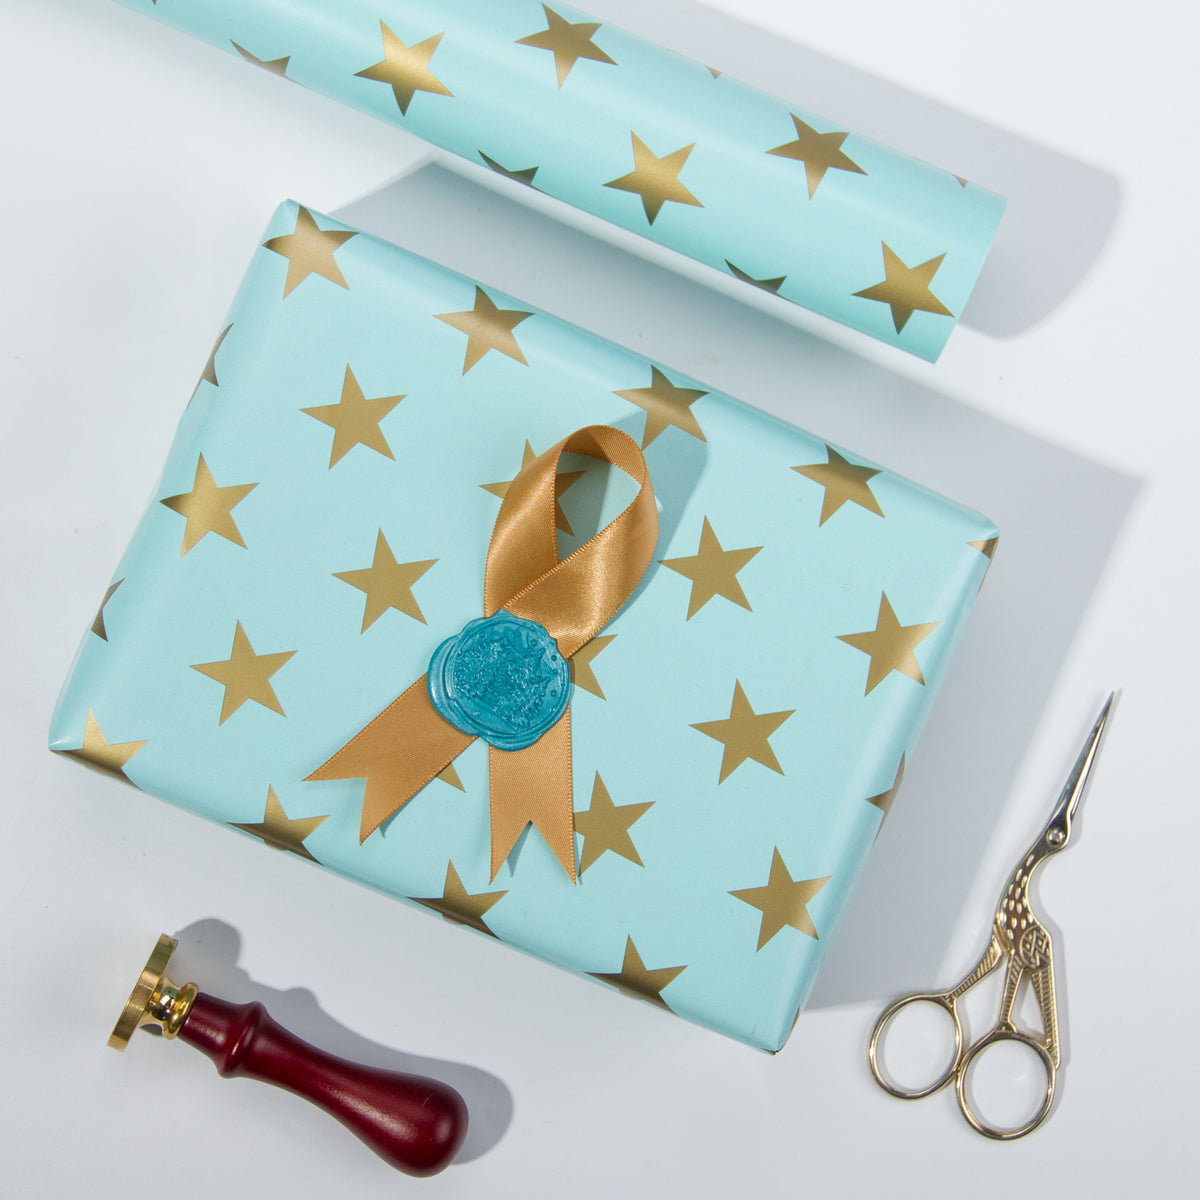 Wrapaholic-Mint-Color- with-Gold-Print Star-Design-Gift -Wrapping-Paper-Roll-5